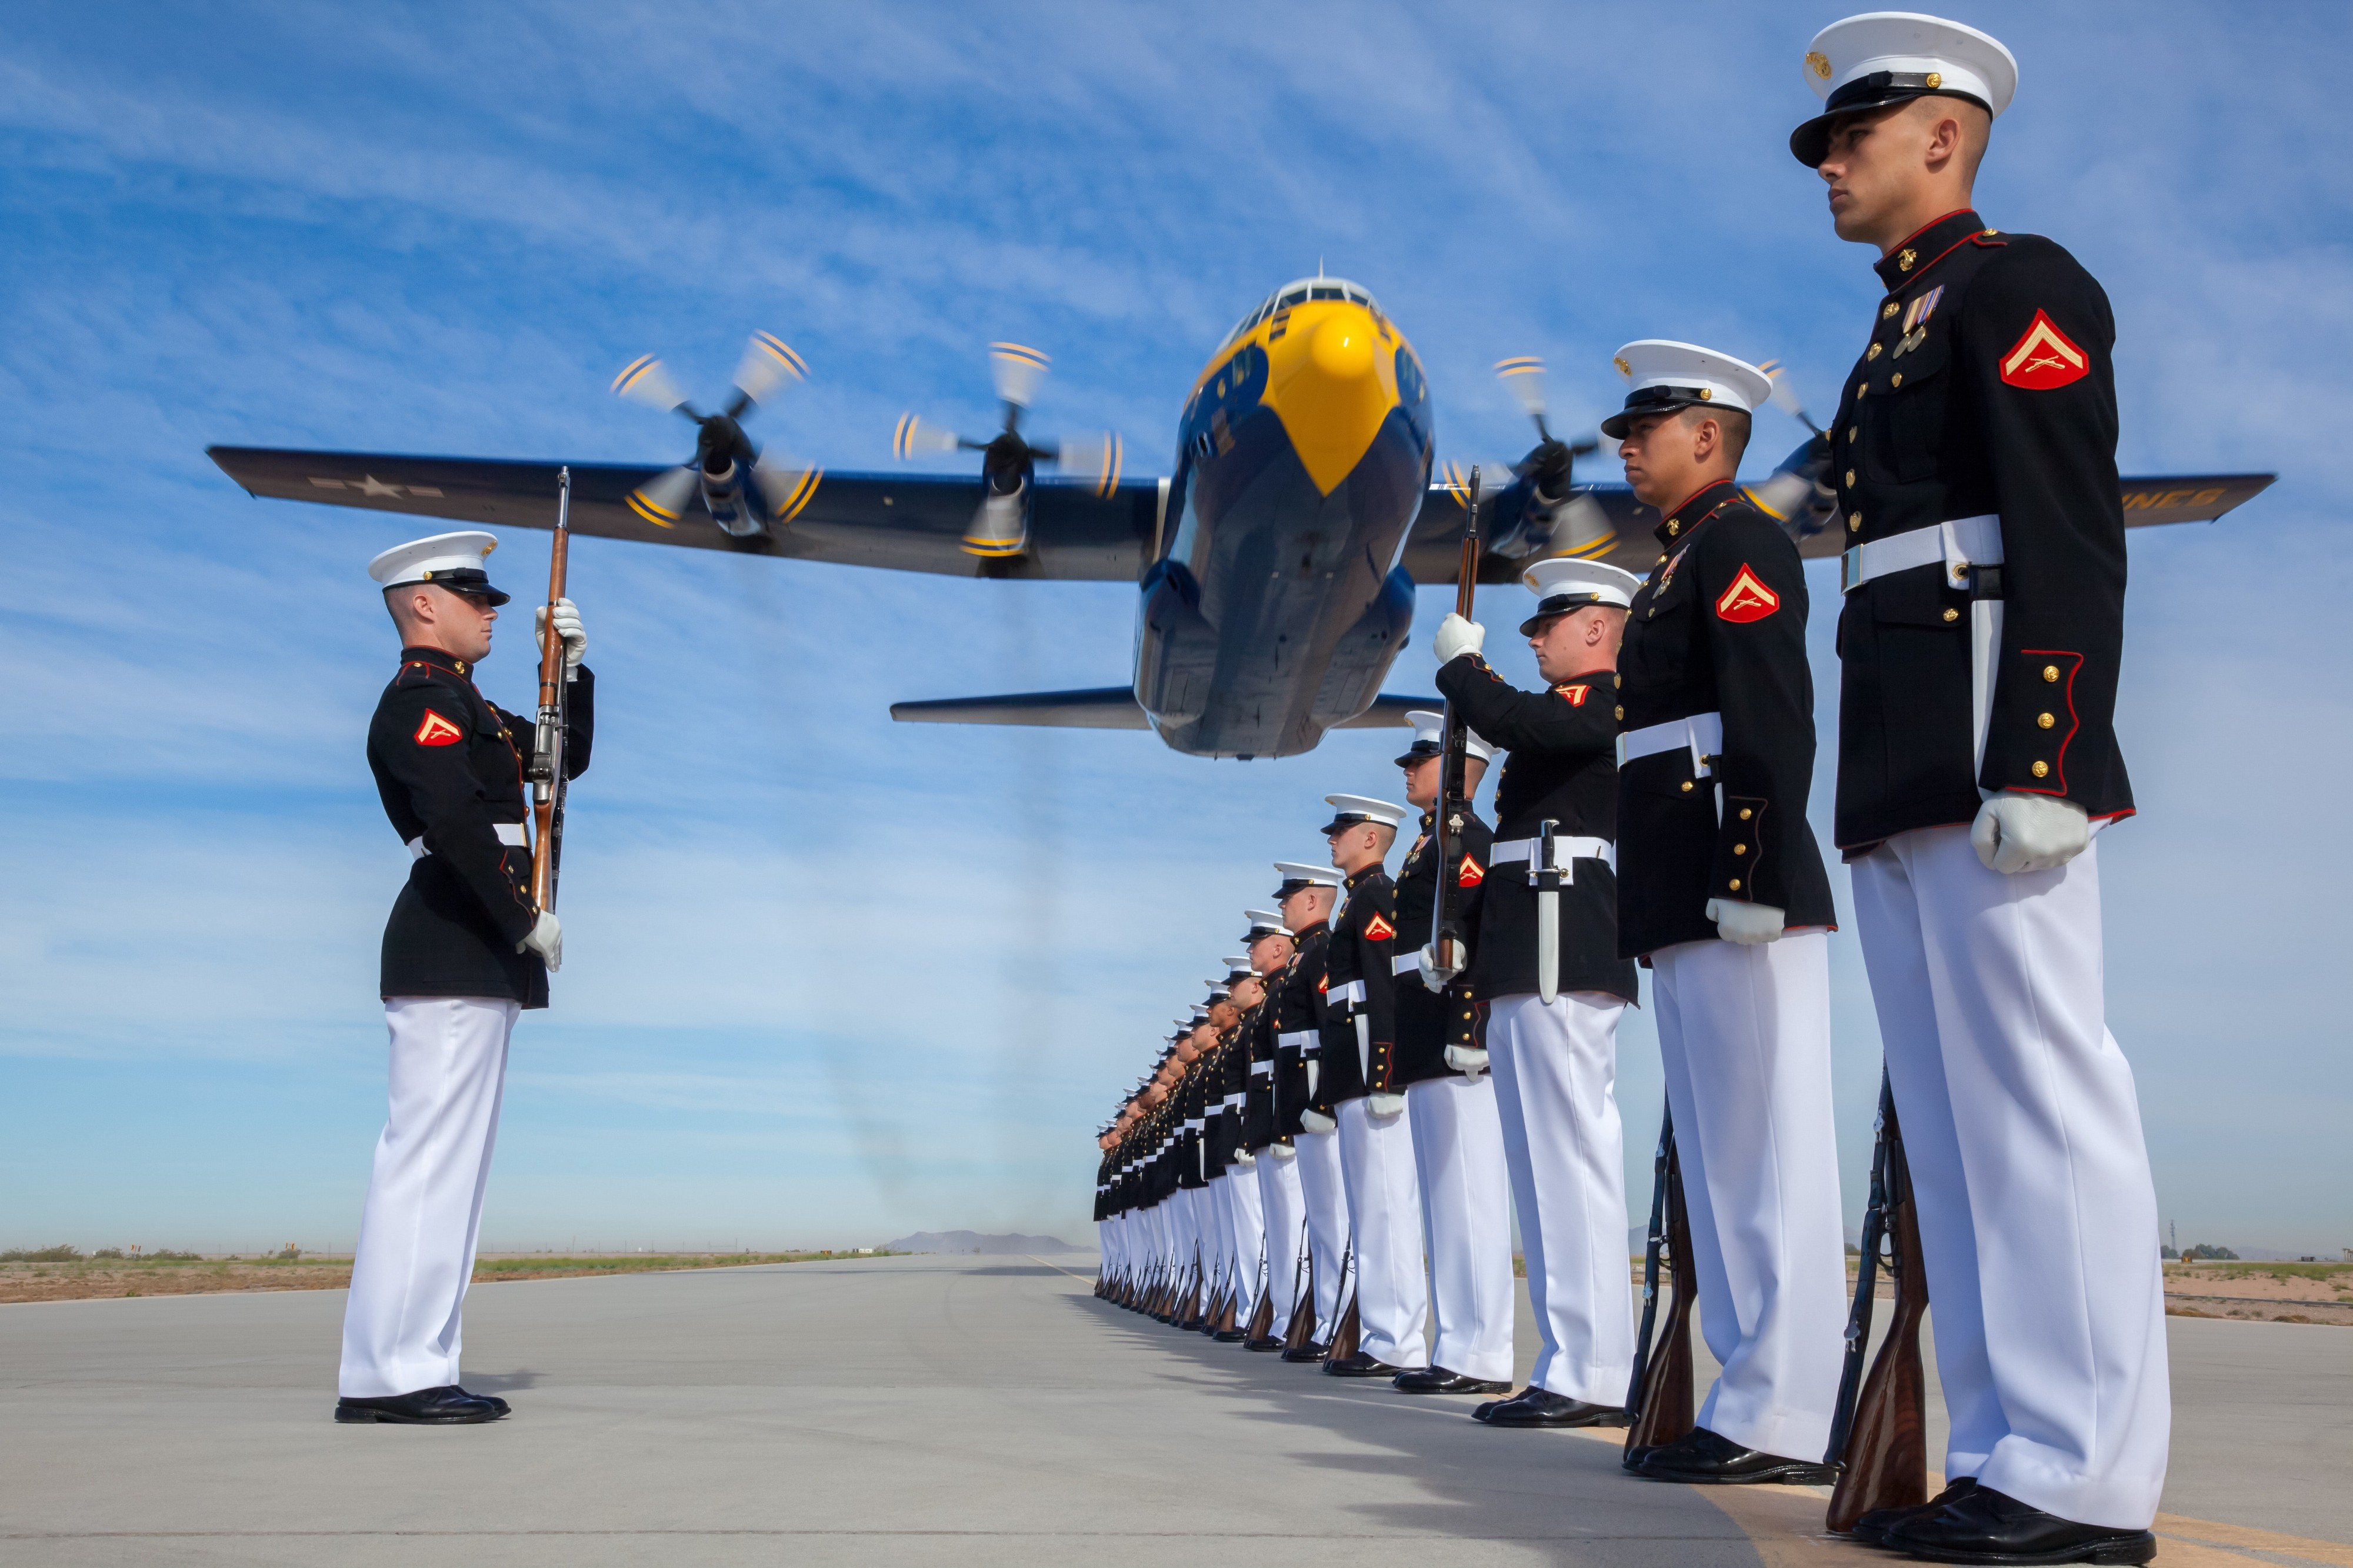 Group of US Marines standing in formation with an airplane flying overhead.